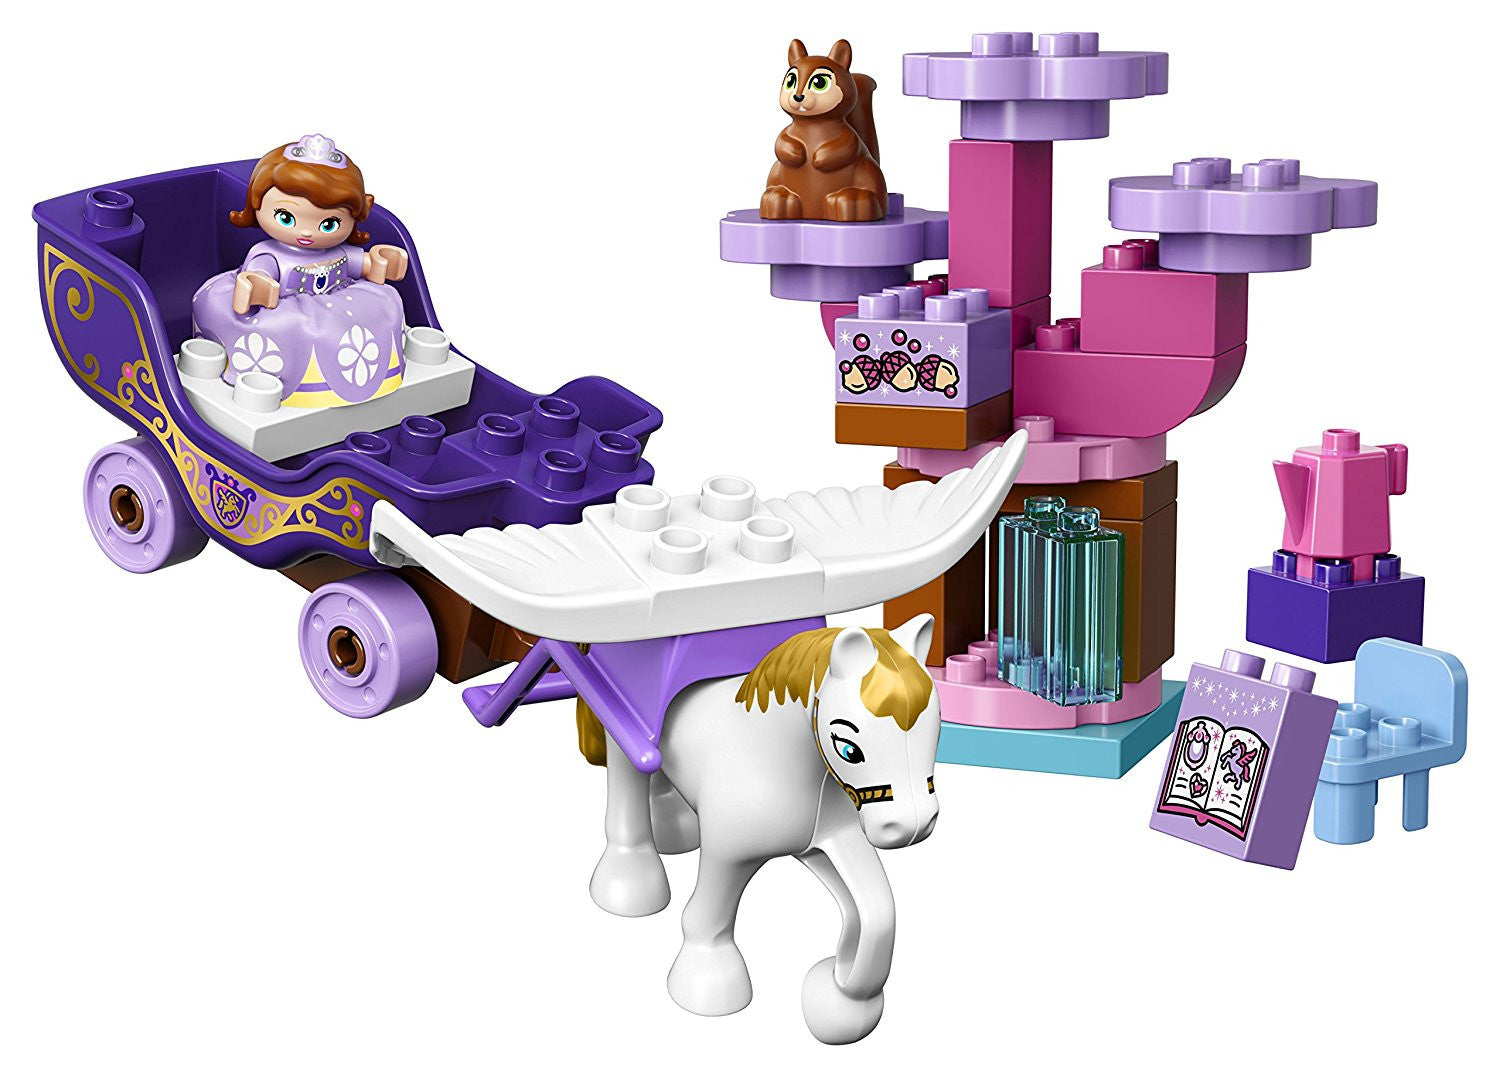 LEGO DUPLO Disney Sofia the First Magical Carriage